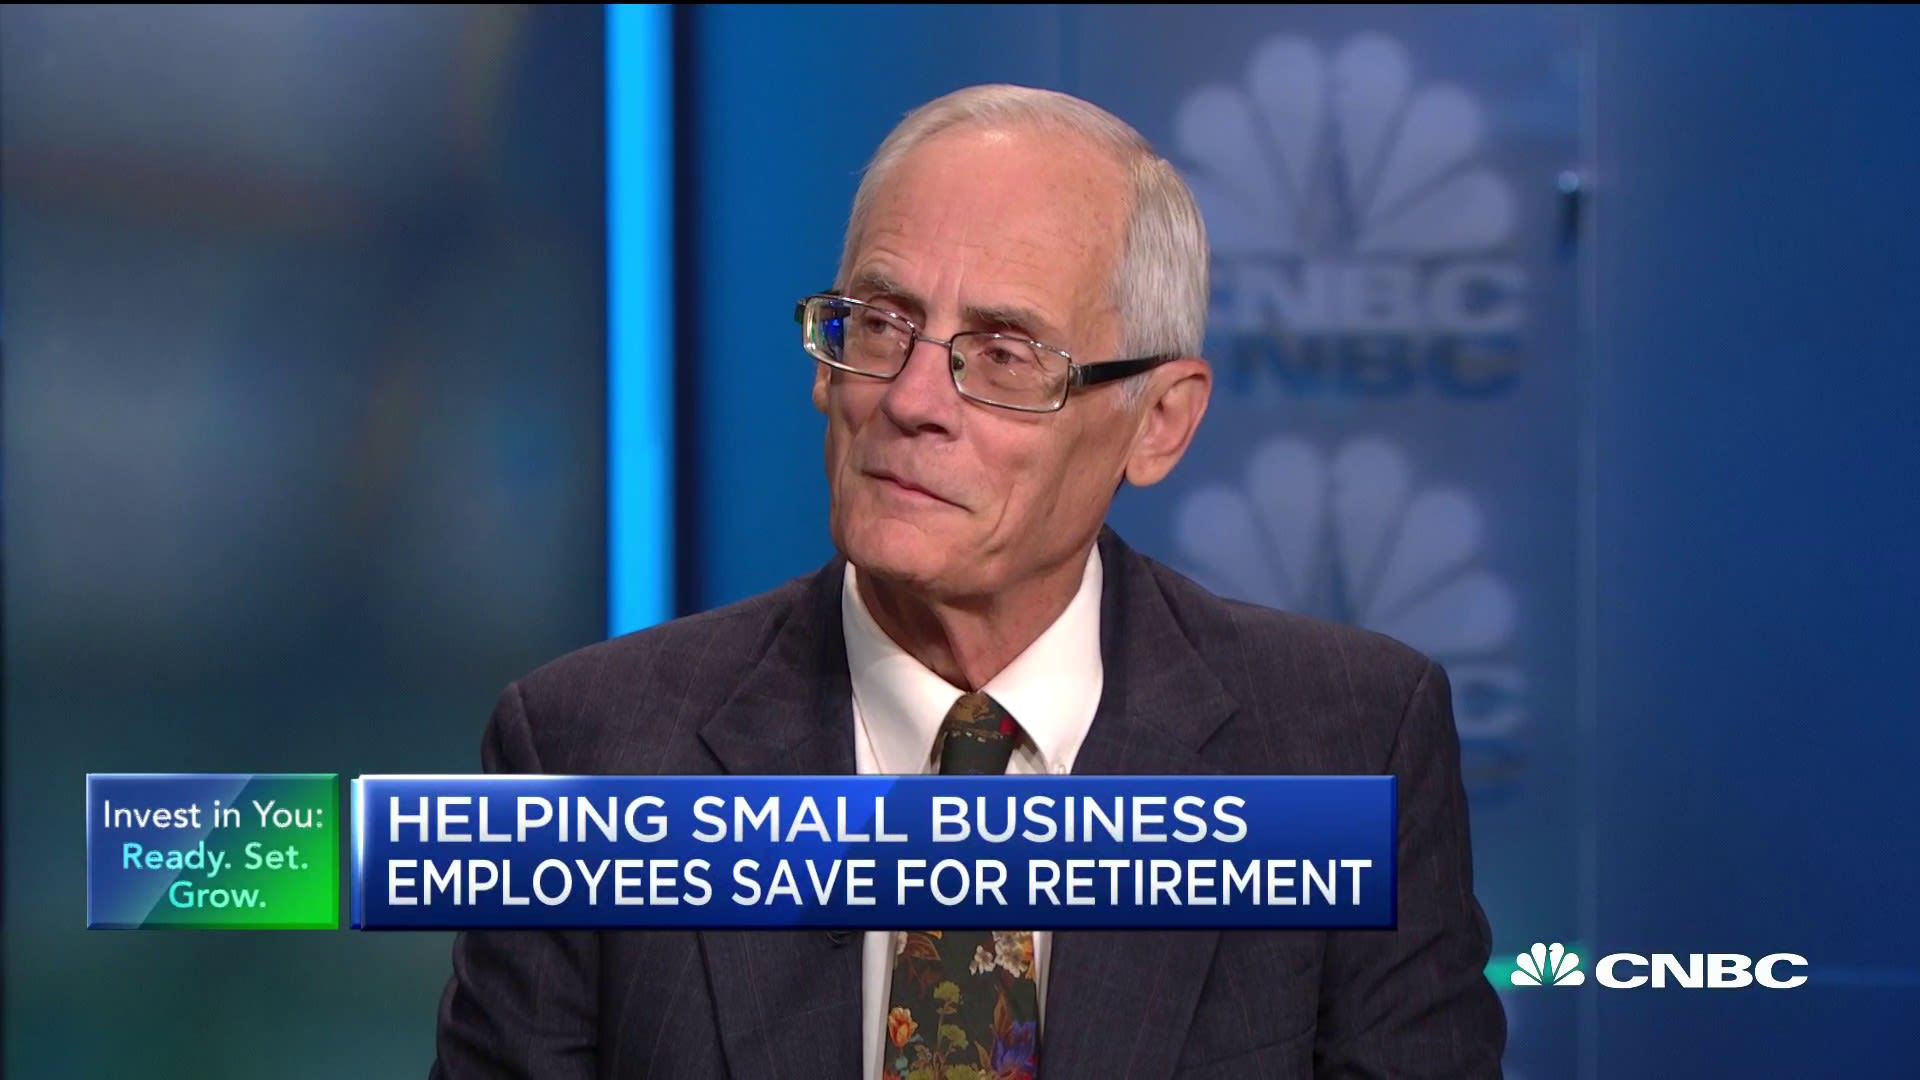 Ted Benna, the 'father of the 401(k),' has a new mission: helping small business employees save for retirement